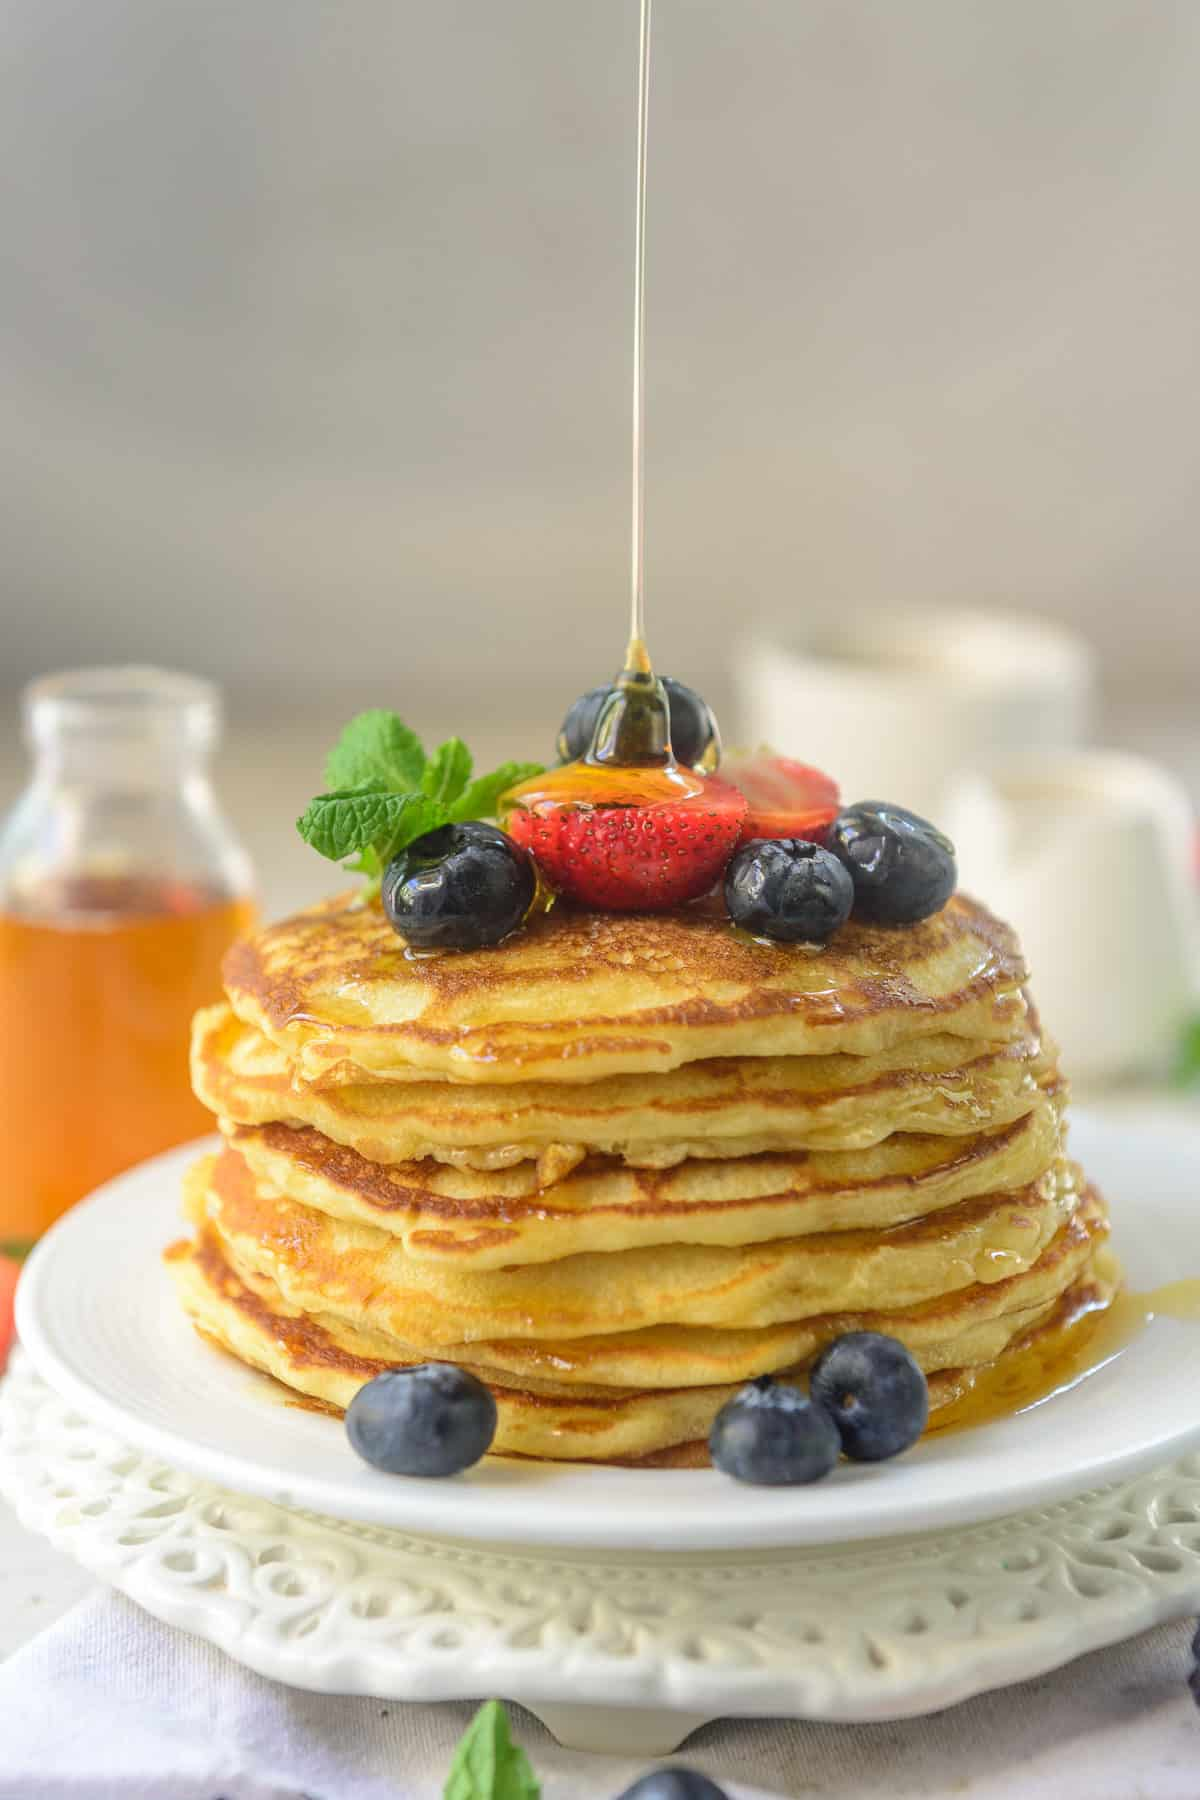 Old Fashioned Pancakes stacked on a plate.